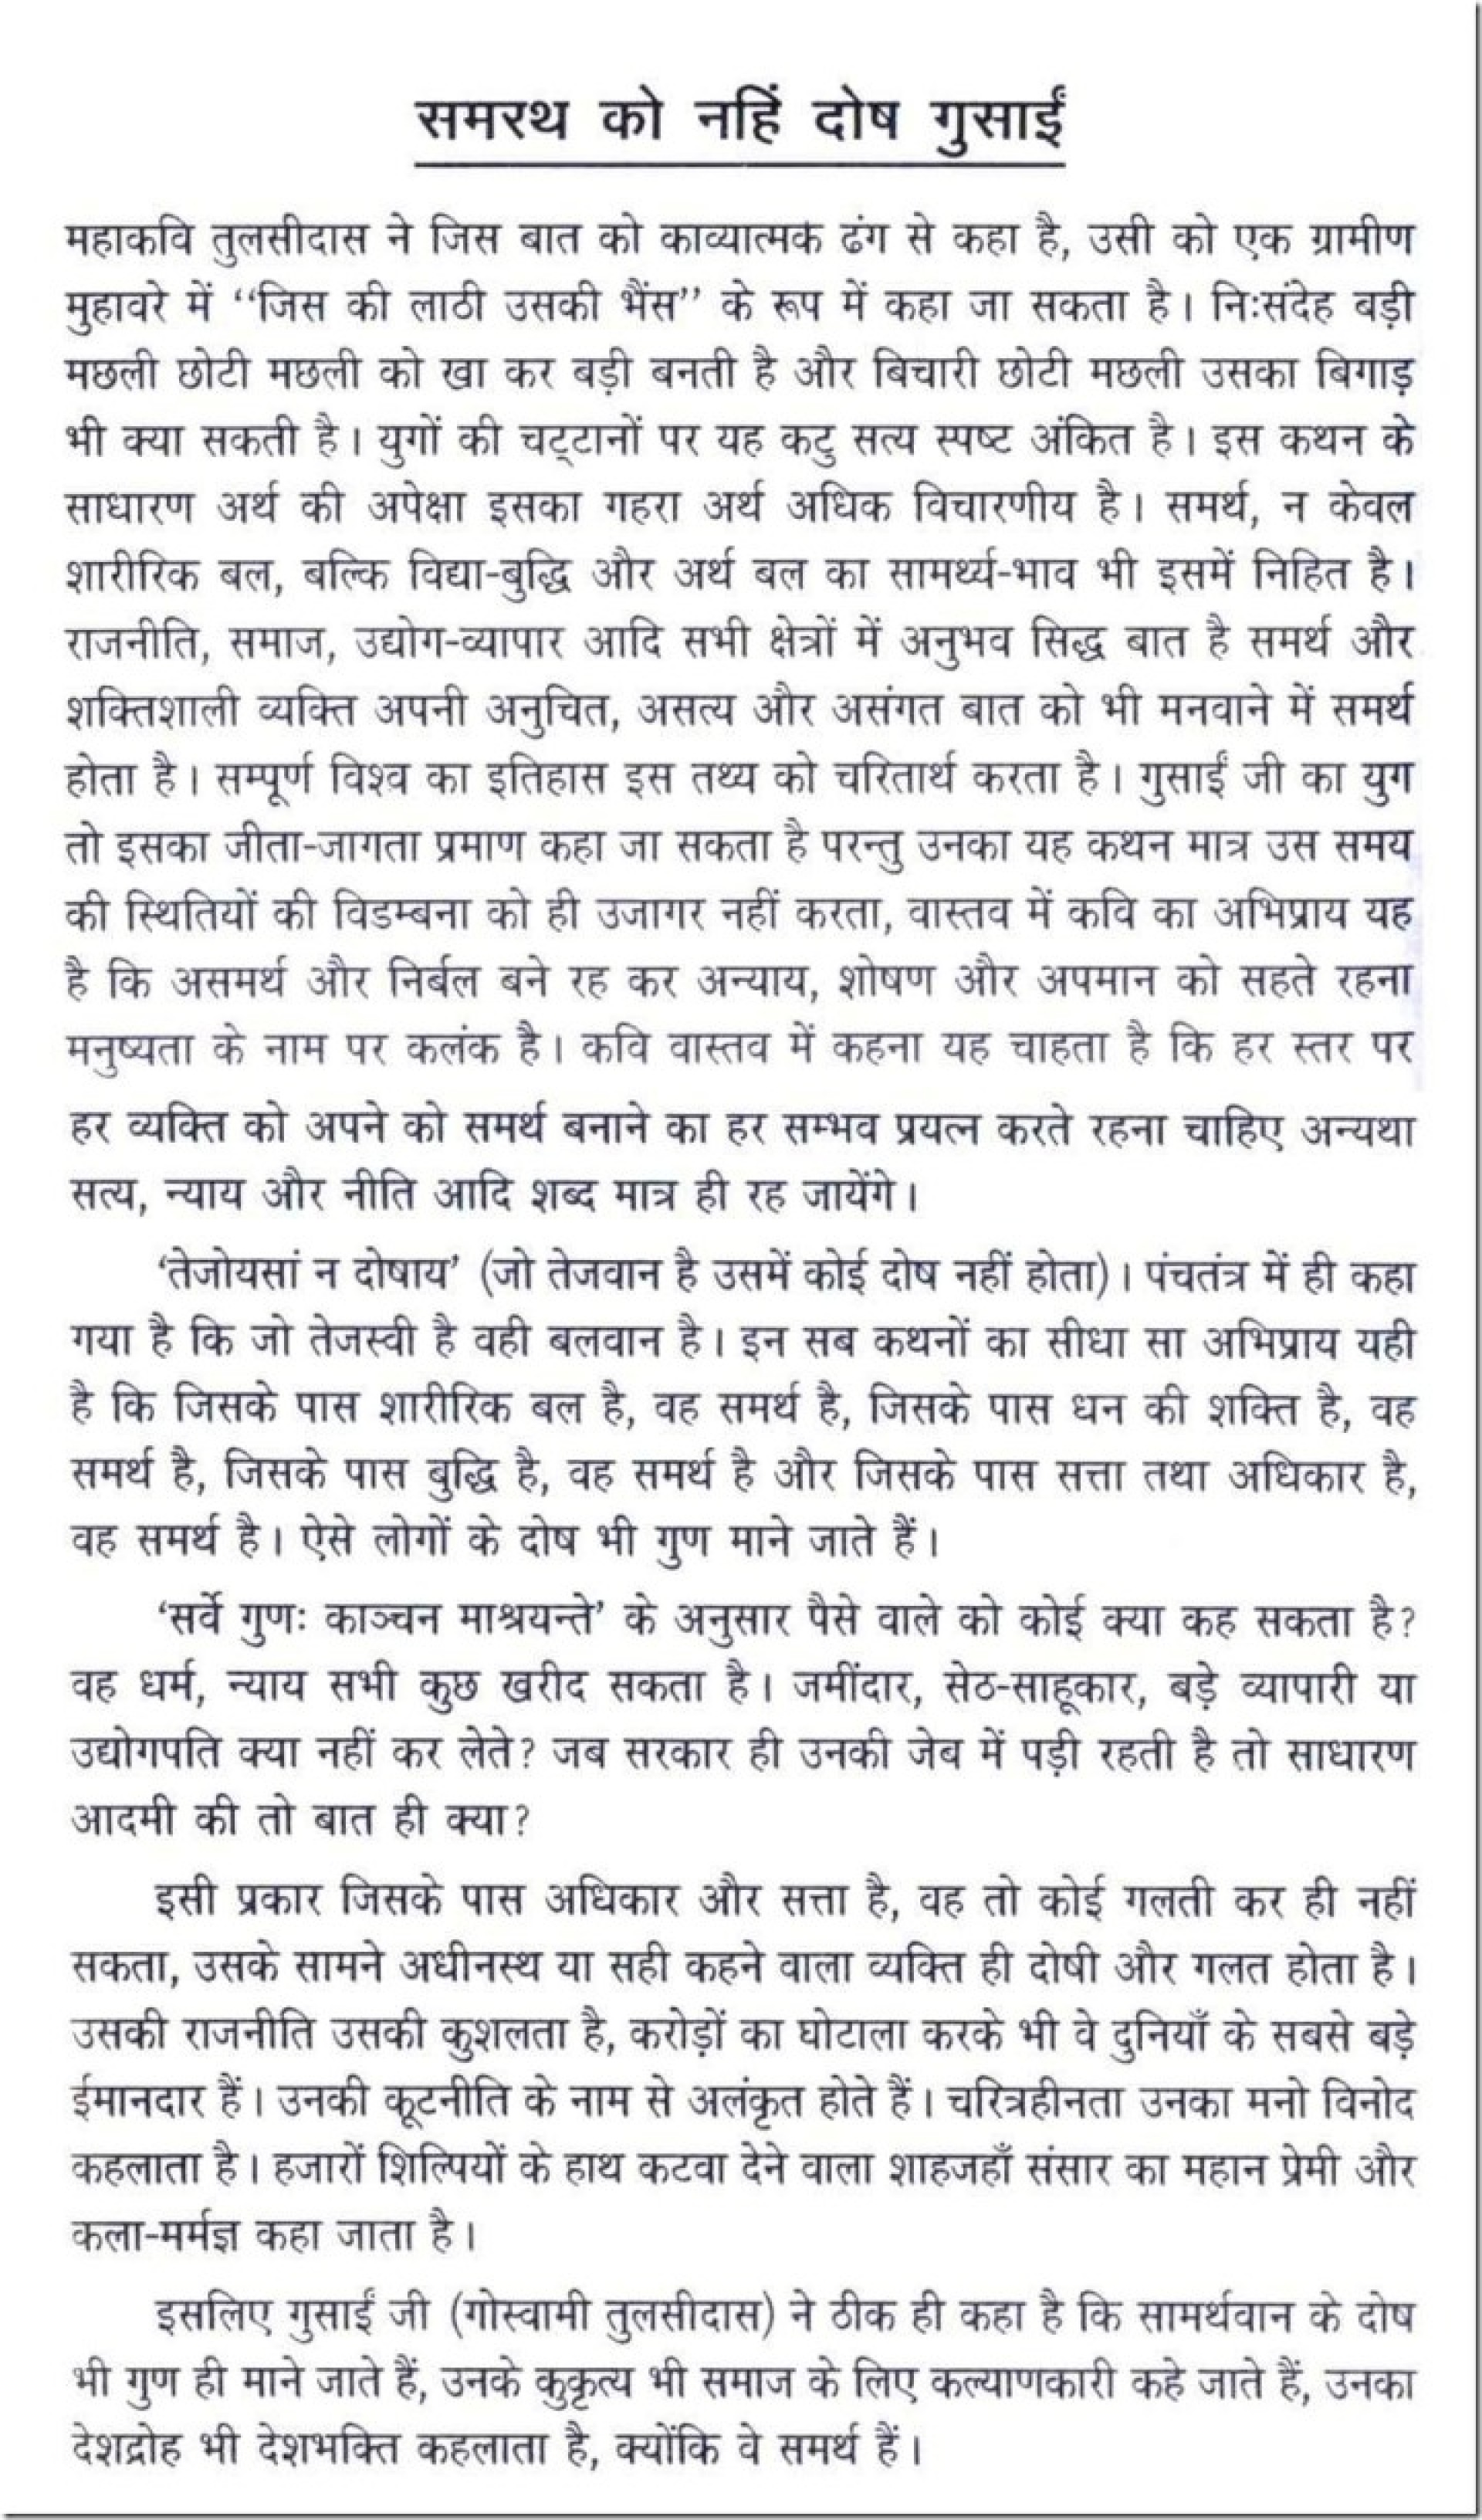 007 Good Habits Essay In Hindi Example Hh0055 Thumbresize7202c1224 Exceptional Healthy Eating Reading Is A Habit 1920